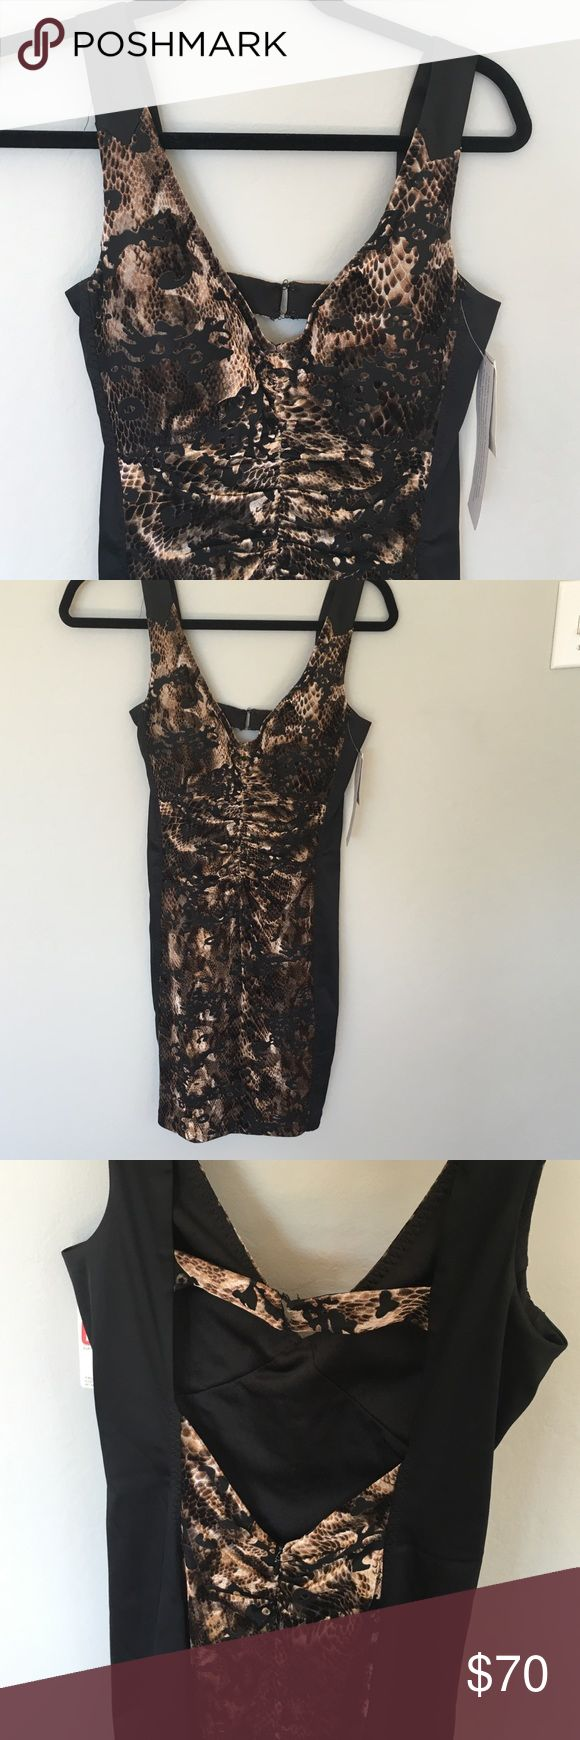 Aidan Mattox dress, size 6, 330$,selling for $70! new unworn Aidan Mattox dress, size 6, with with the tag.Originally 330$, bought it from Notdsrom for $197, selling for $70! Aidan Mattox Dresses Midi